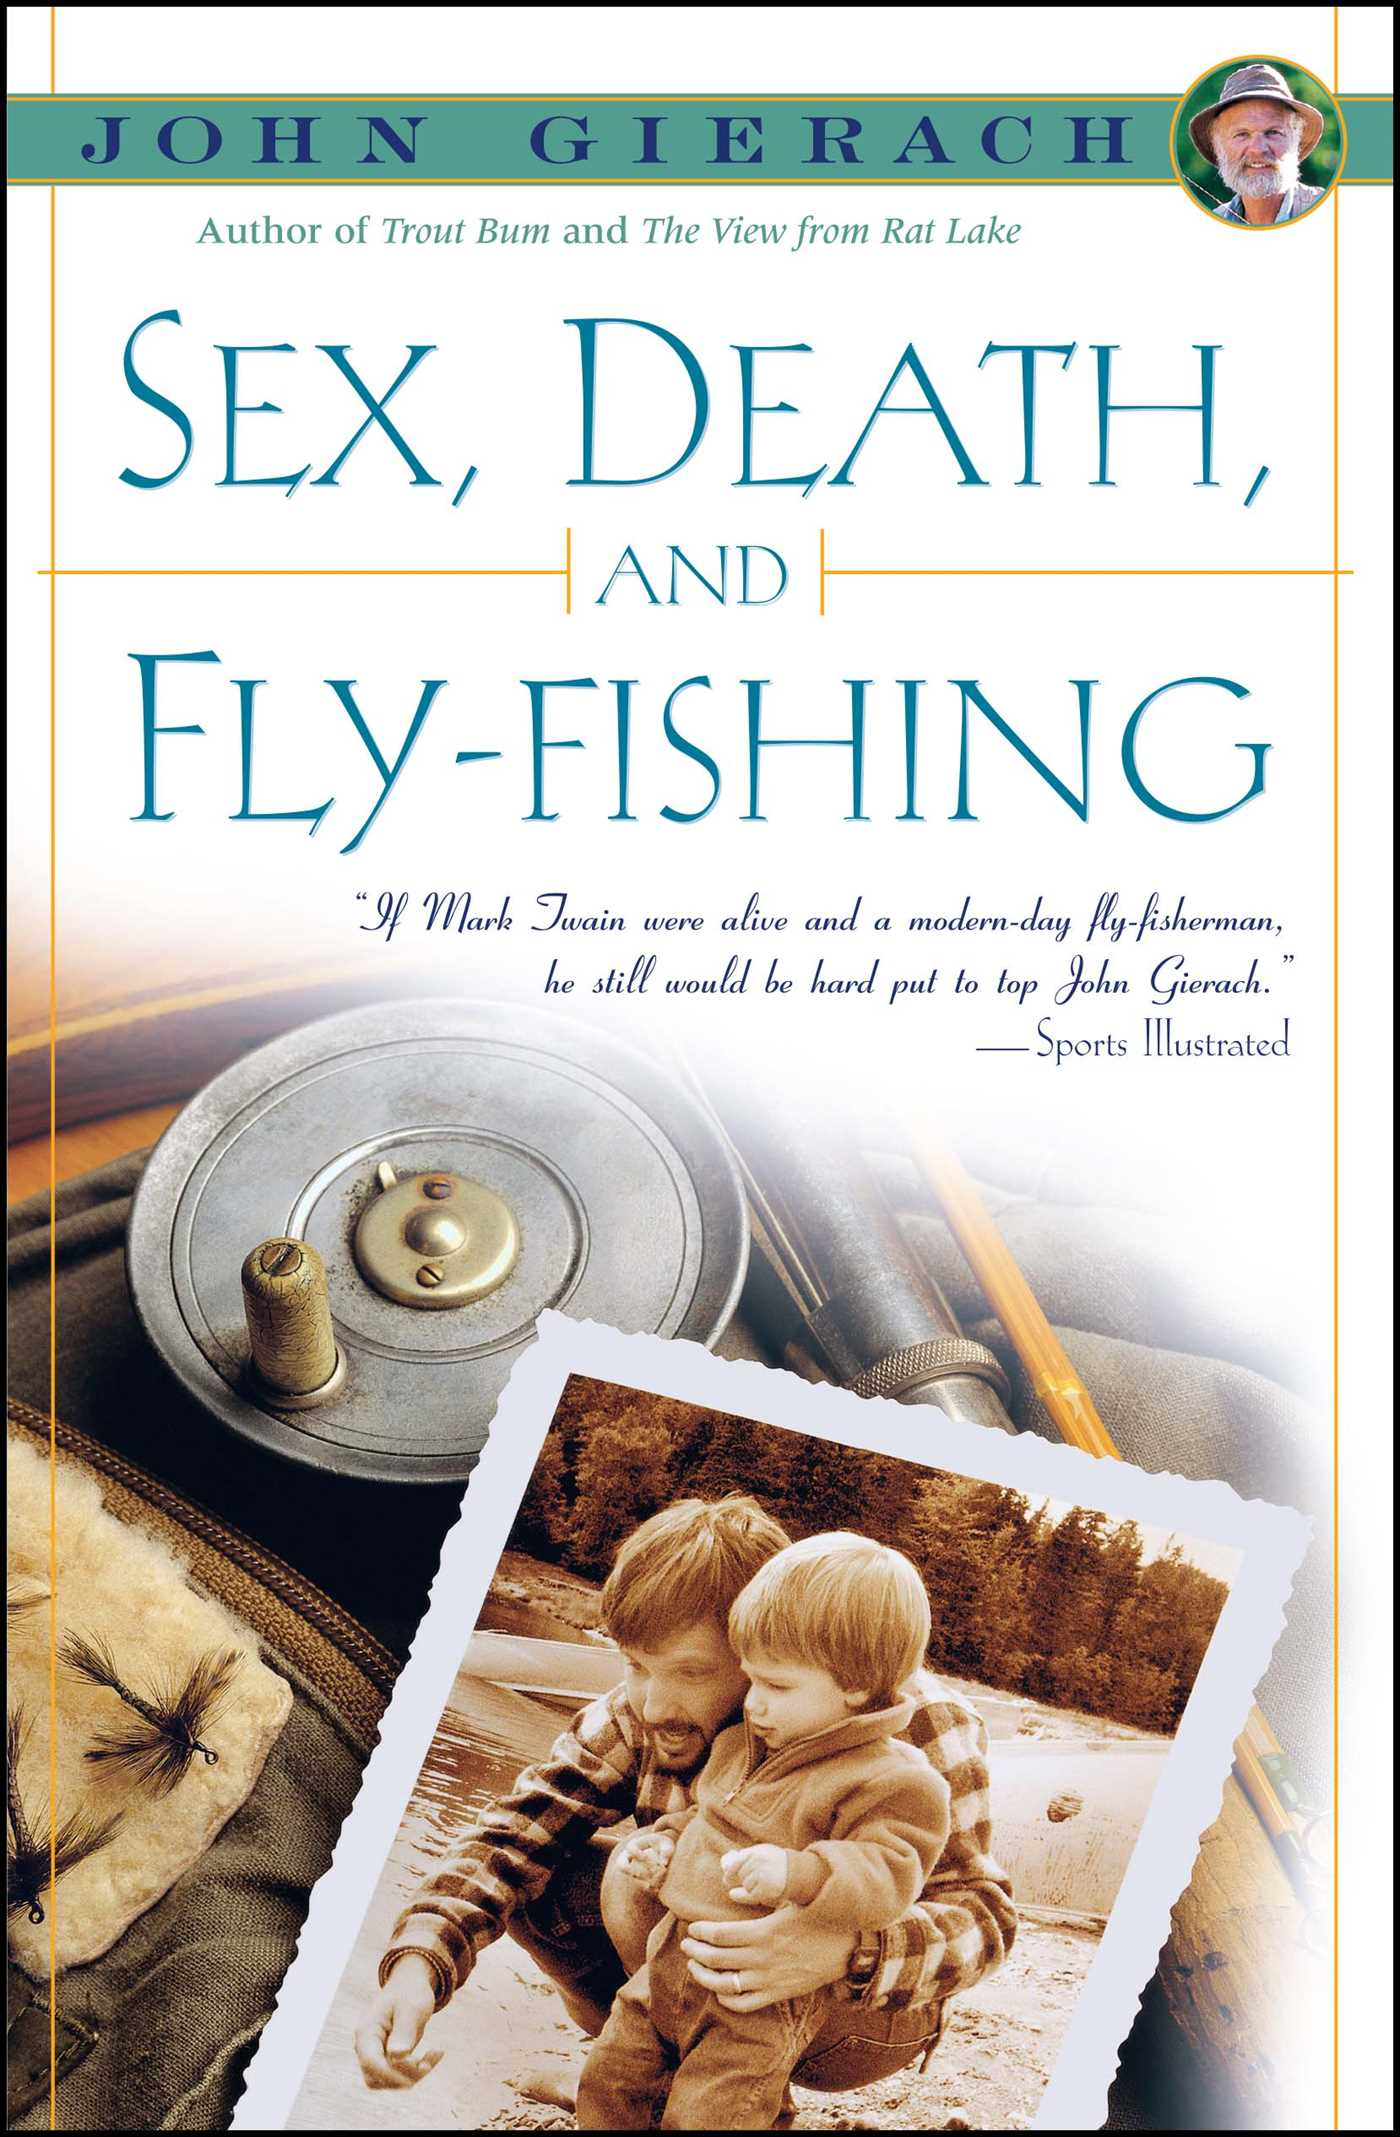 Sex-death-and-fly-fishing-9780671684372_hr